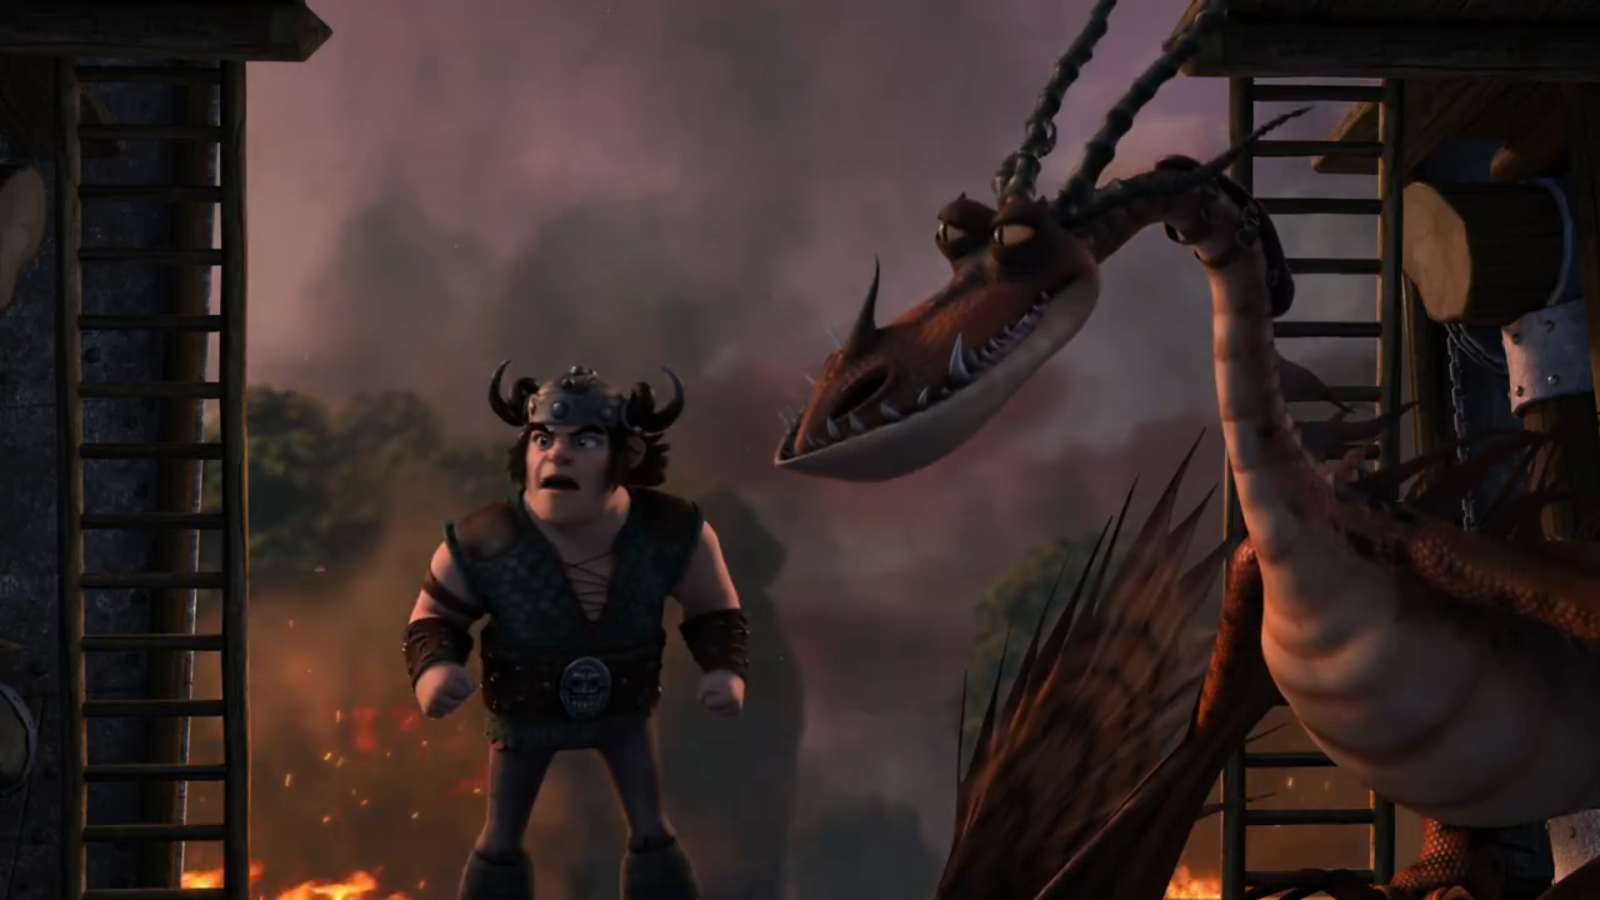 snotlout how to train your dragon